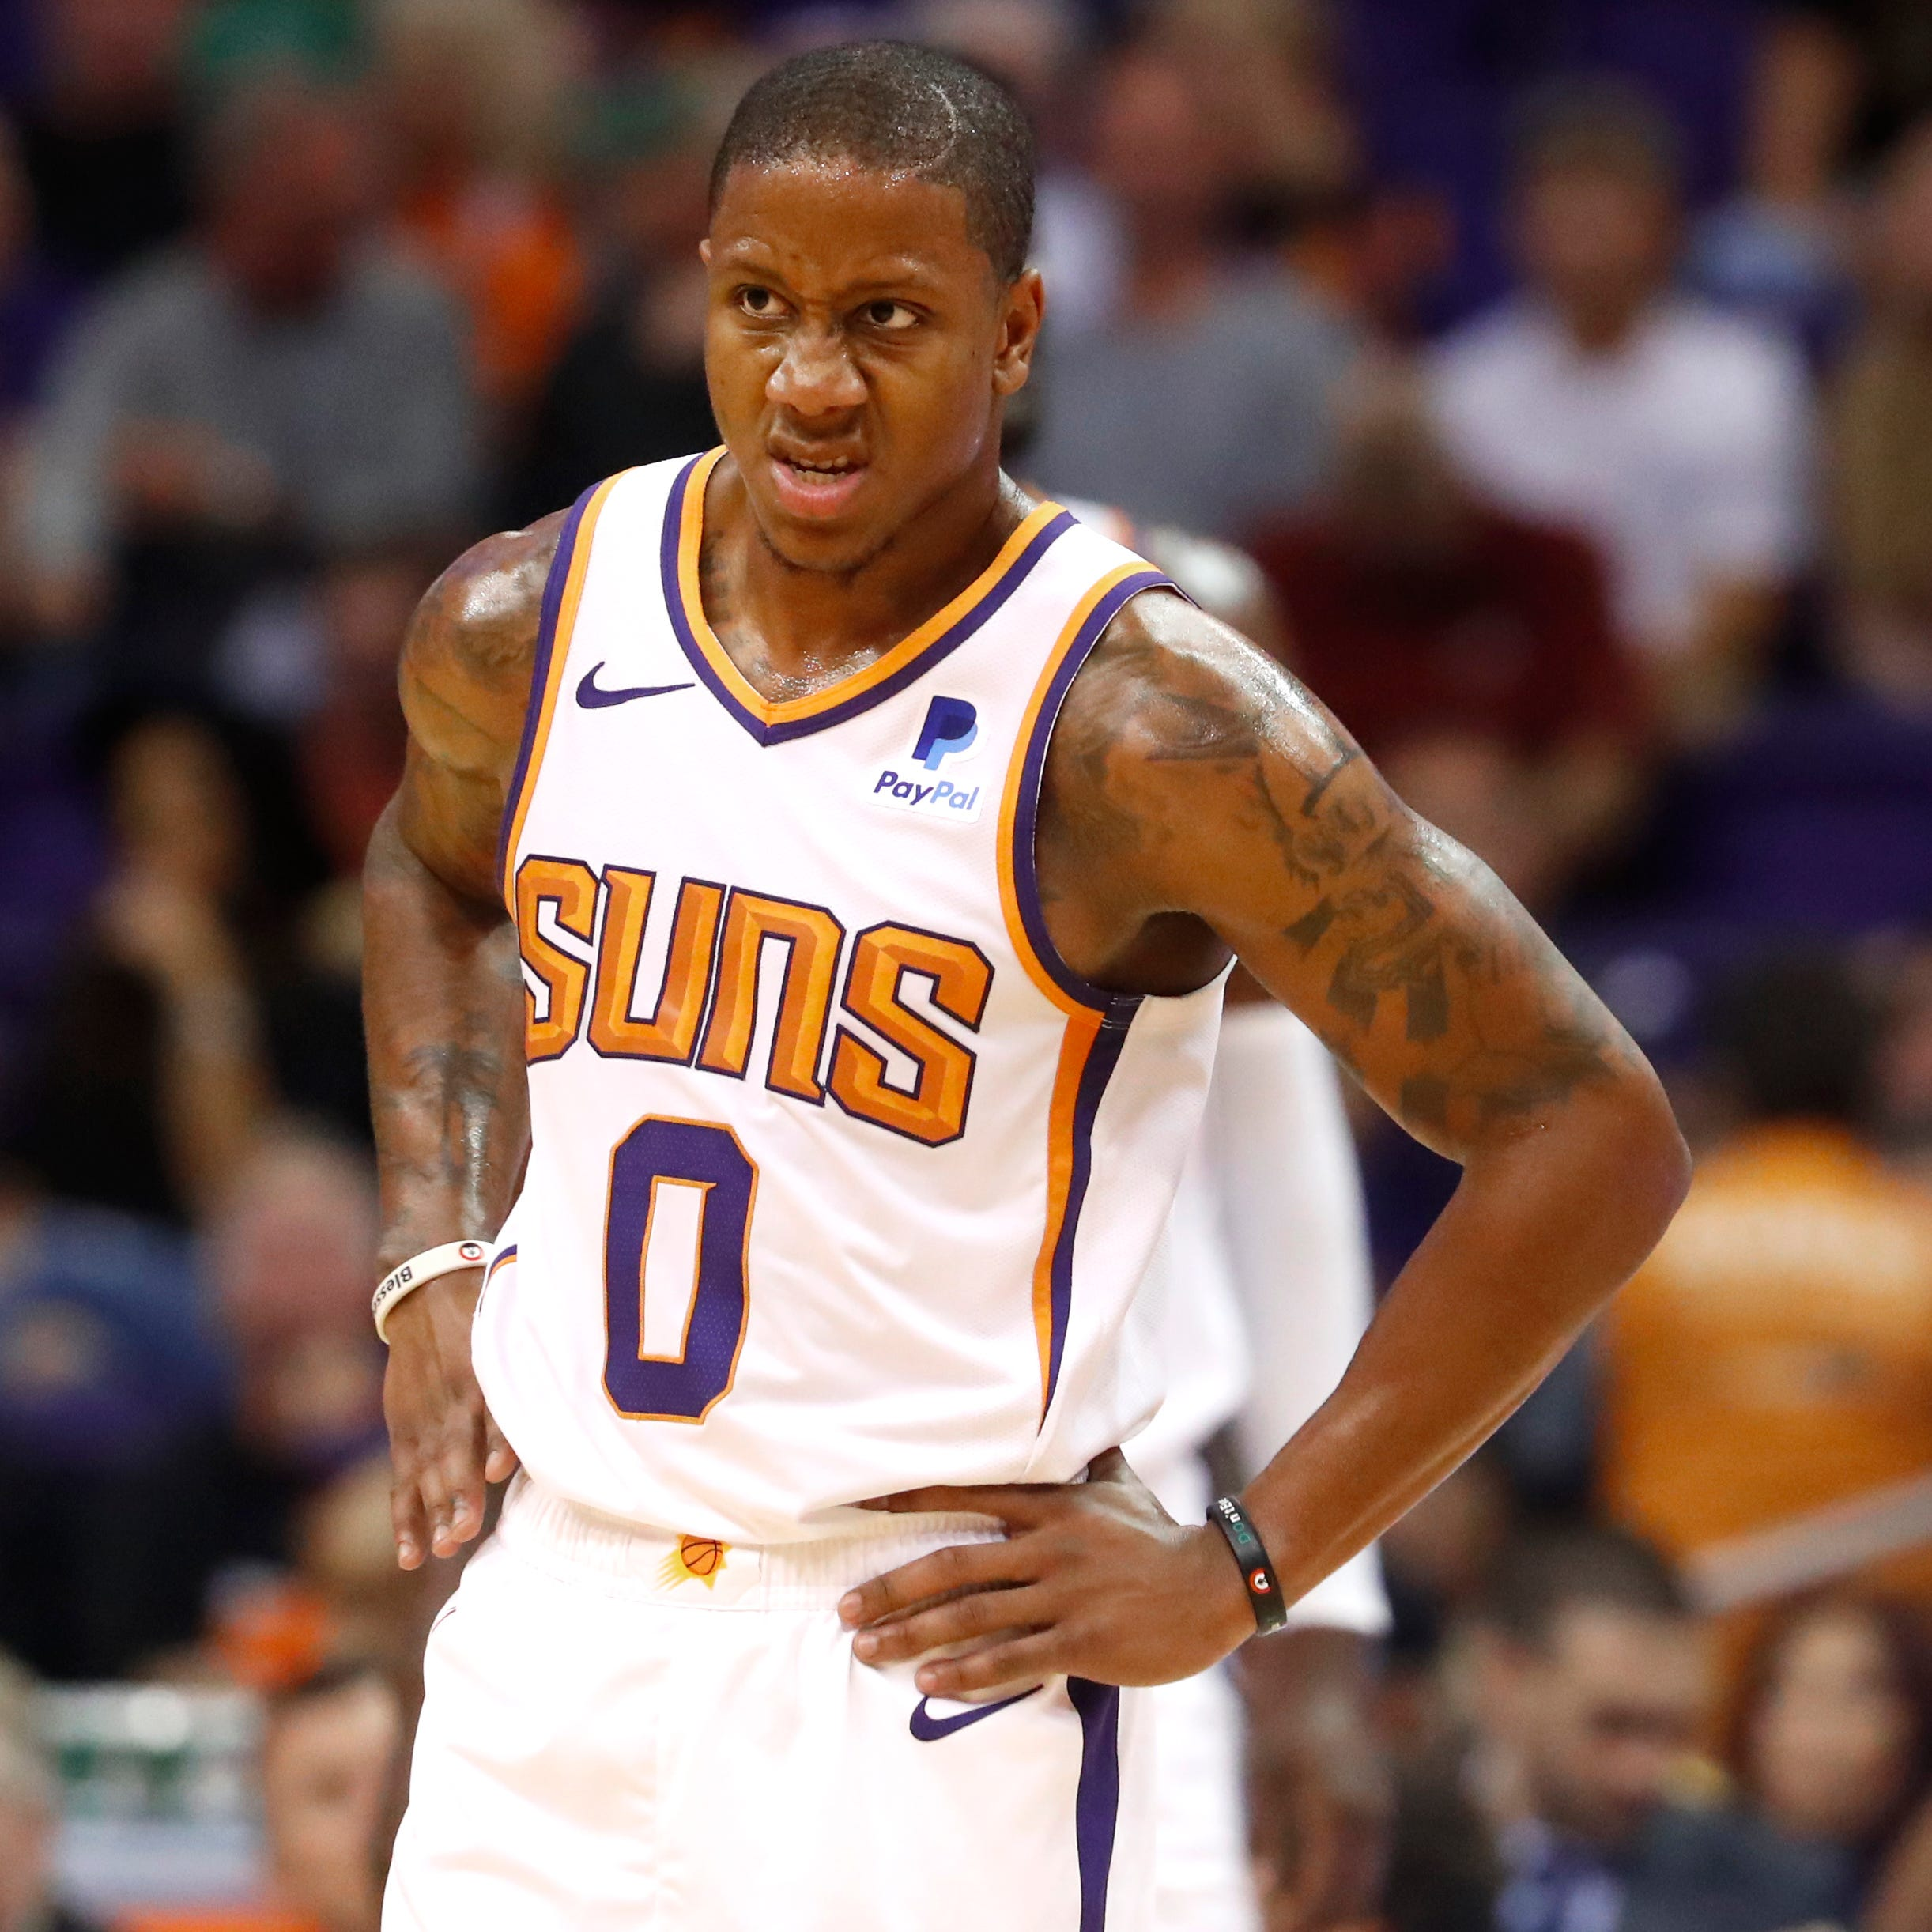 Suns' Isaiah Canaan (0) waits for a timeout to end against the Celtics during the first half at Talking Stick Resort Arena in Phoenix, Ariz. on November 8, 2018.